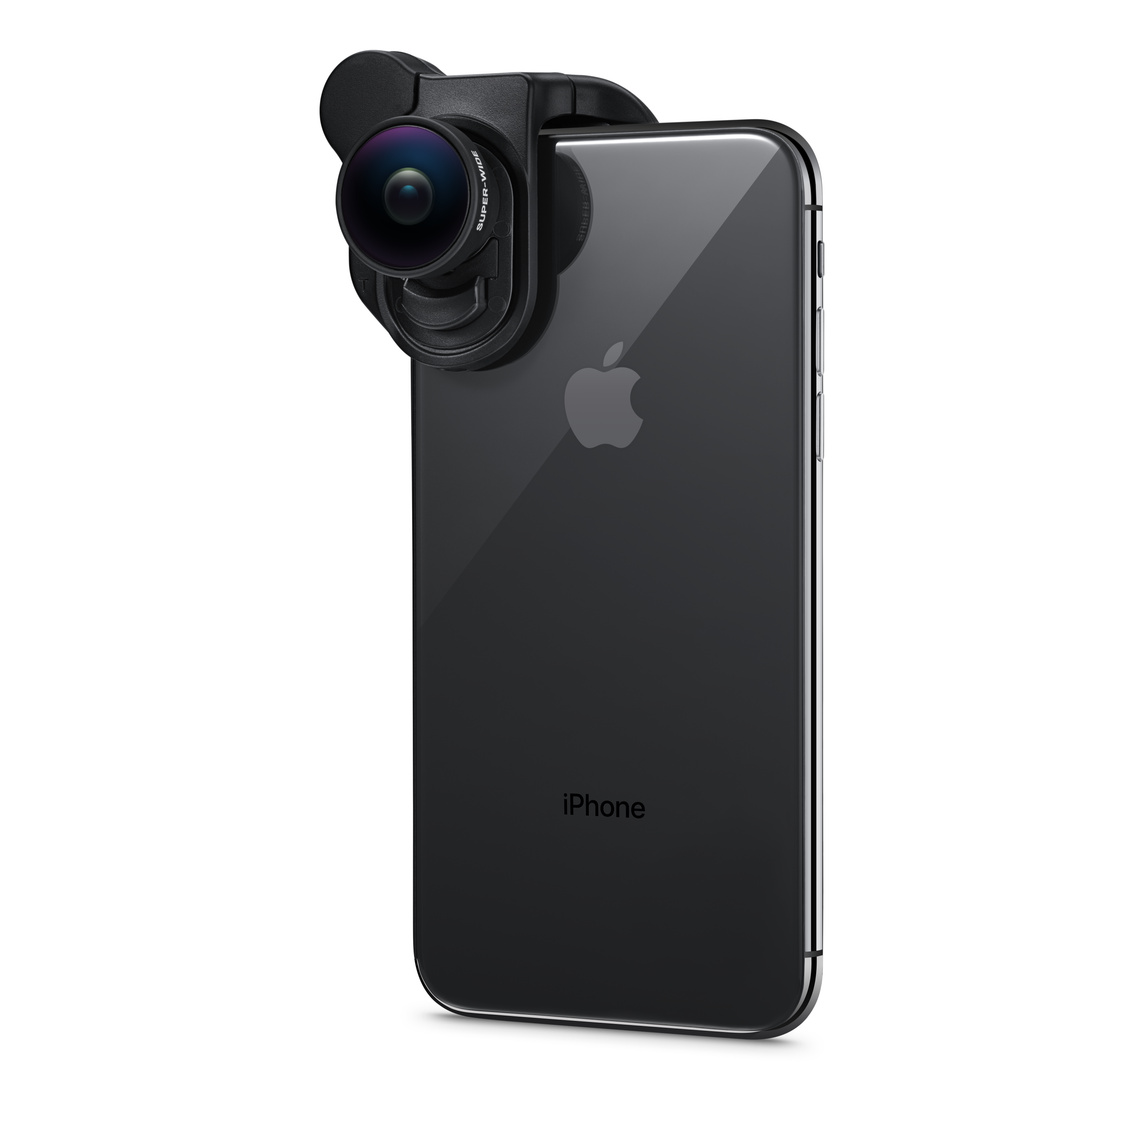 timeless design 8f9b6 7f76b olloclip Mobile Photography Lens Box Set for iPhone X